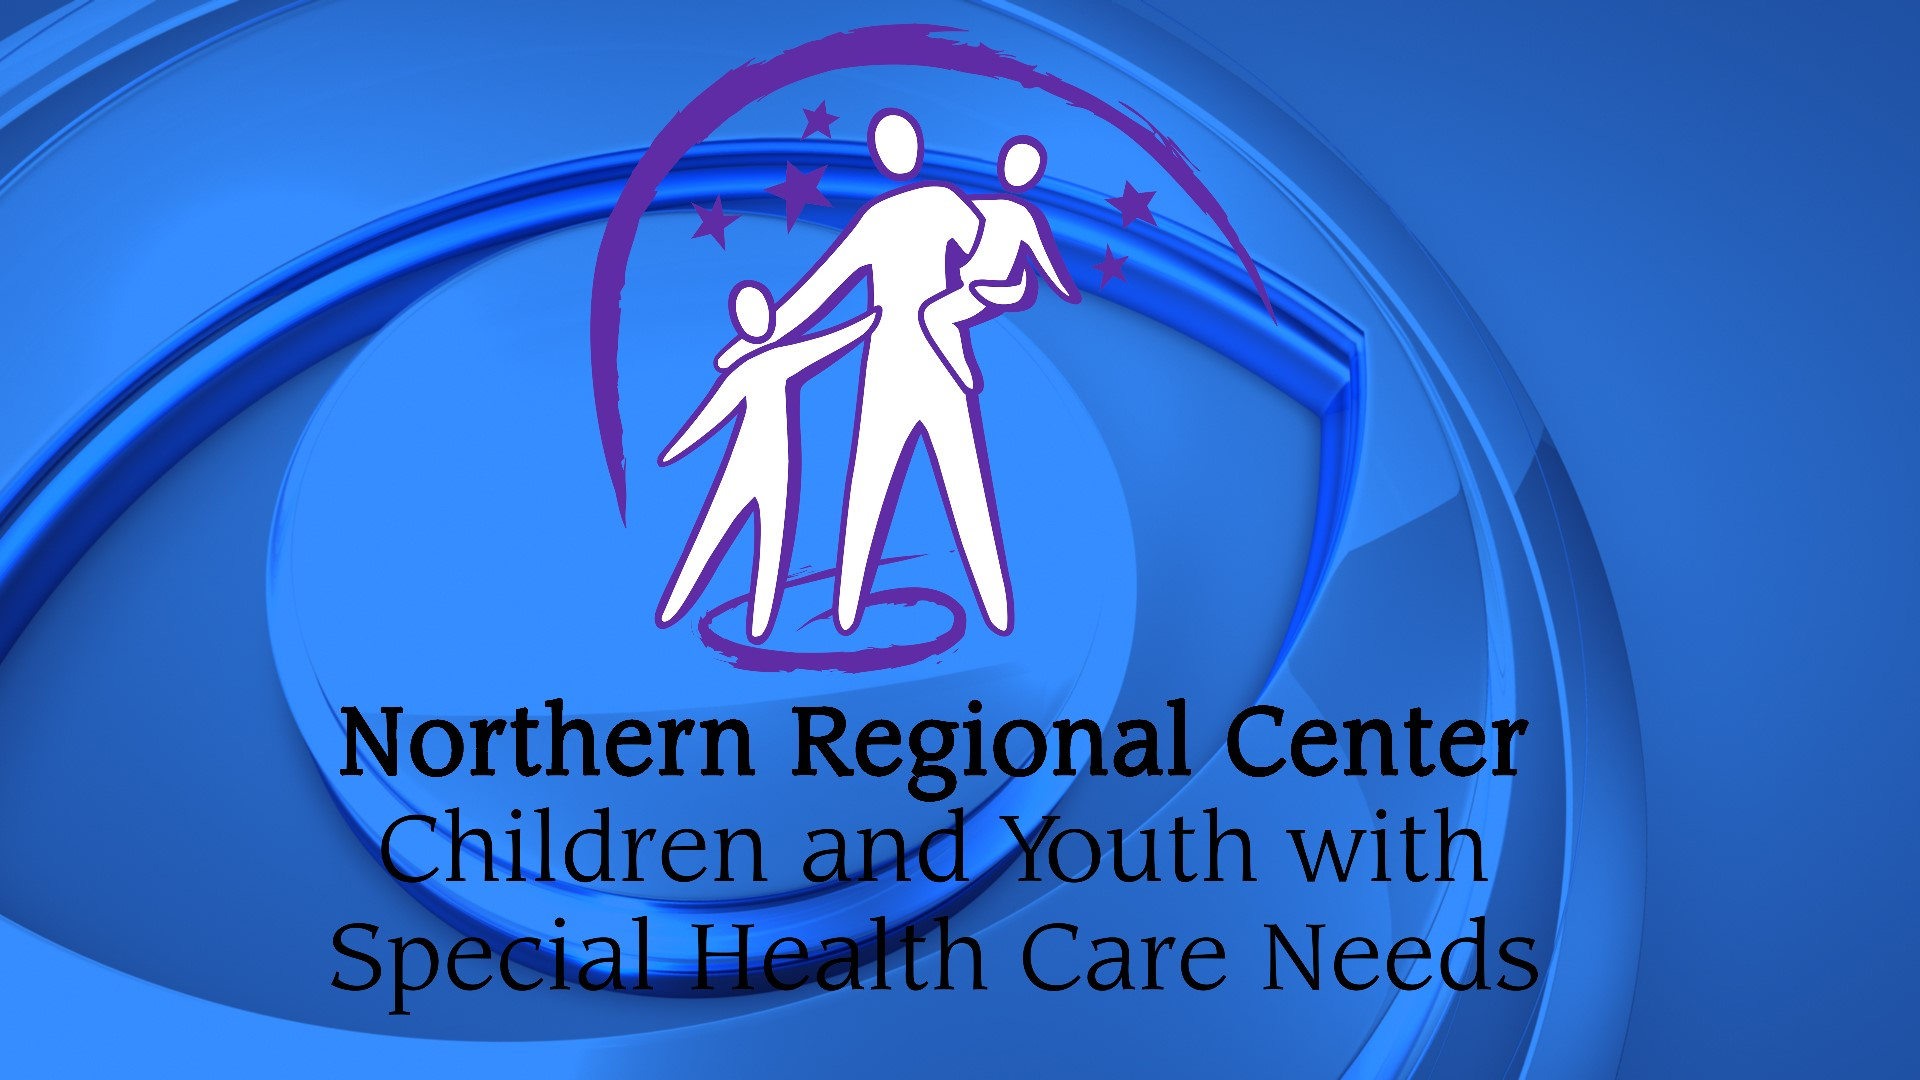 Christmas Assistance Dates For Green Bay Wisconsin 2020 Northern Regional Center for Children and Youth with Special